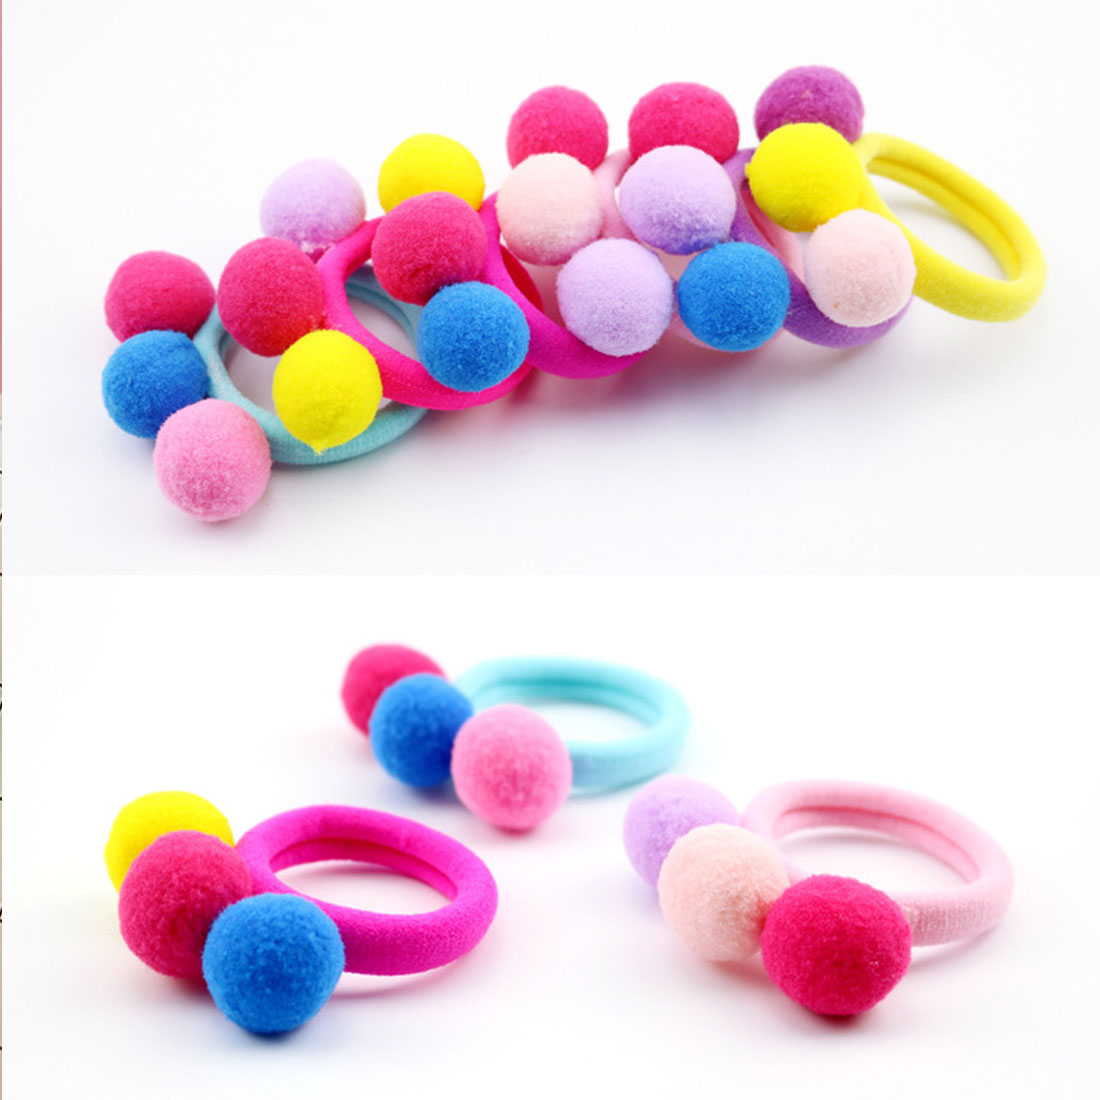 1PC 3Balls Candy Color Elastics Hair Bands Ponytail Holder Rubber Gum Bands Headbands Scrunchy Ropes For Girls Hair Accessories in Hair Accessories from Mother Kids